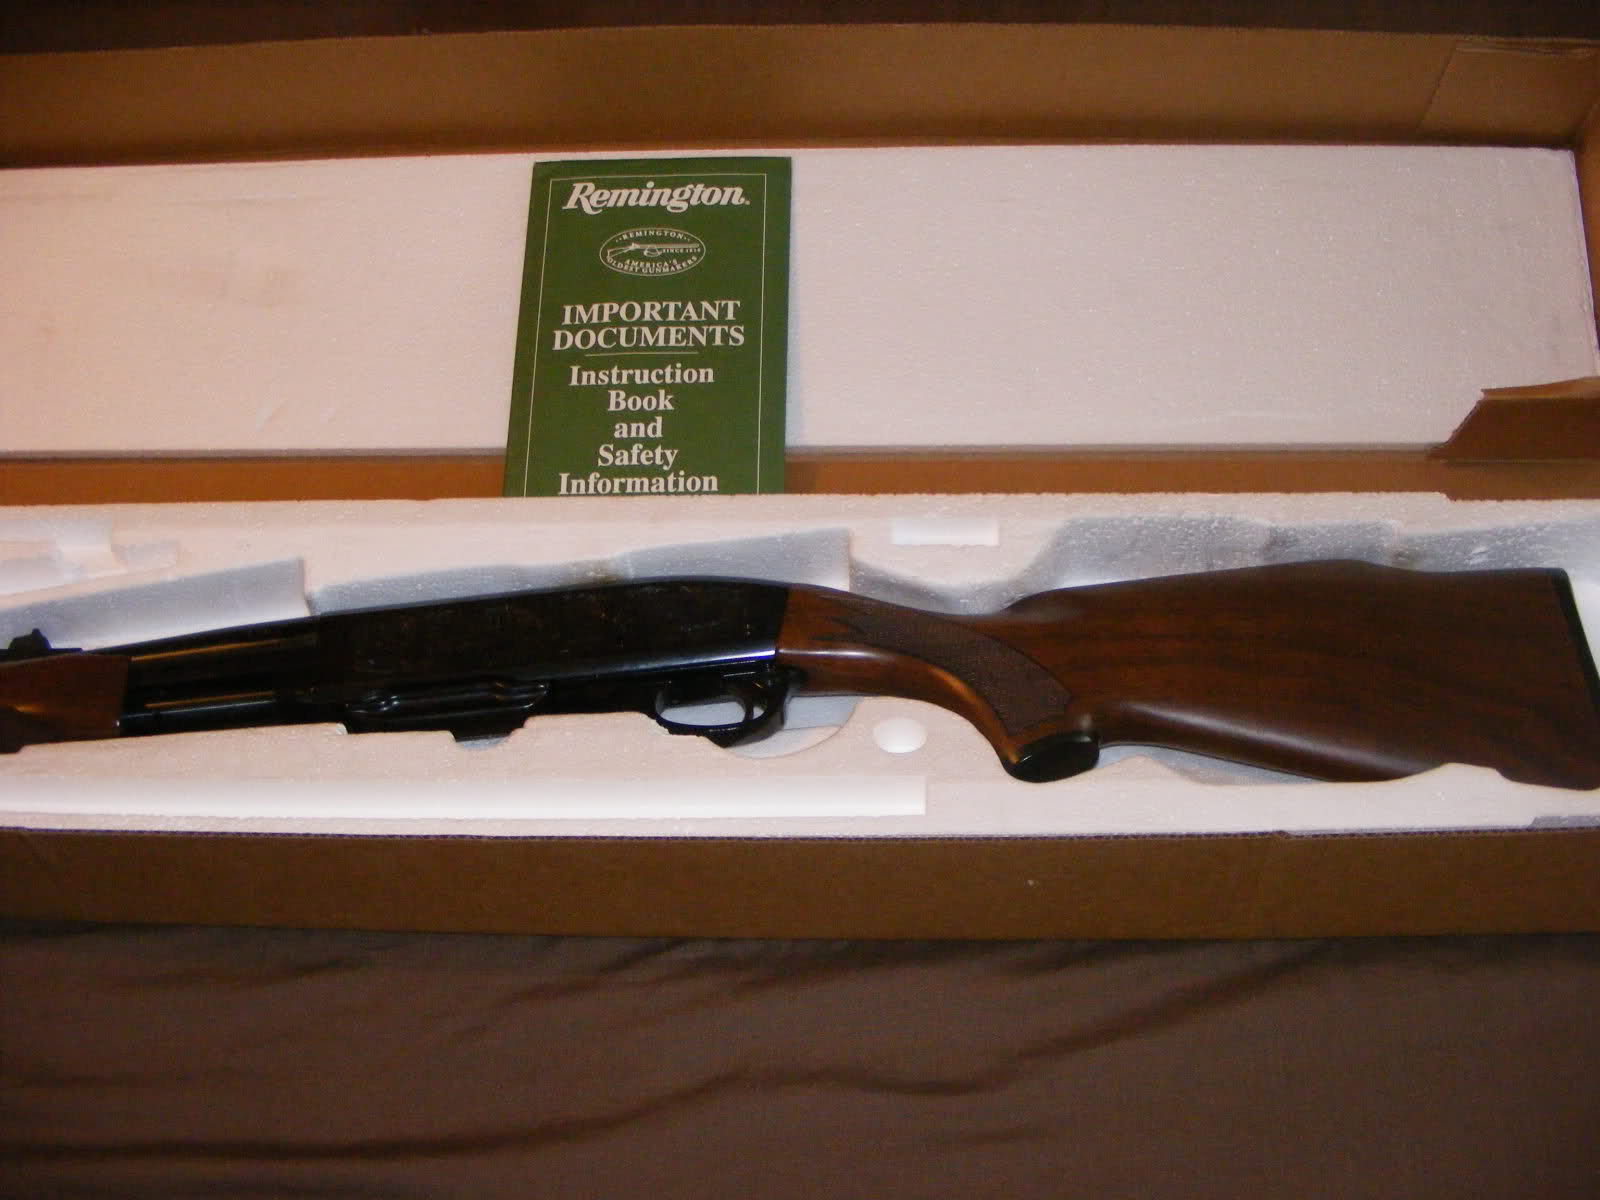 dating remington 7600 Remington 870, 700, 1100 serial/barrel number lookup remington serial/barrel number lookup enables you to check when your remington firearm was manufactured now you can do this automatically using rem870com remington serial/barrel.